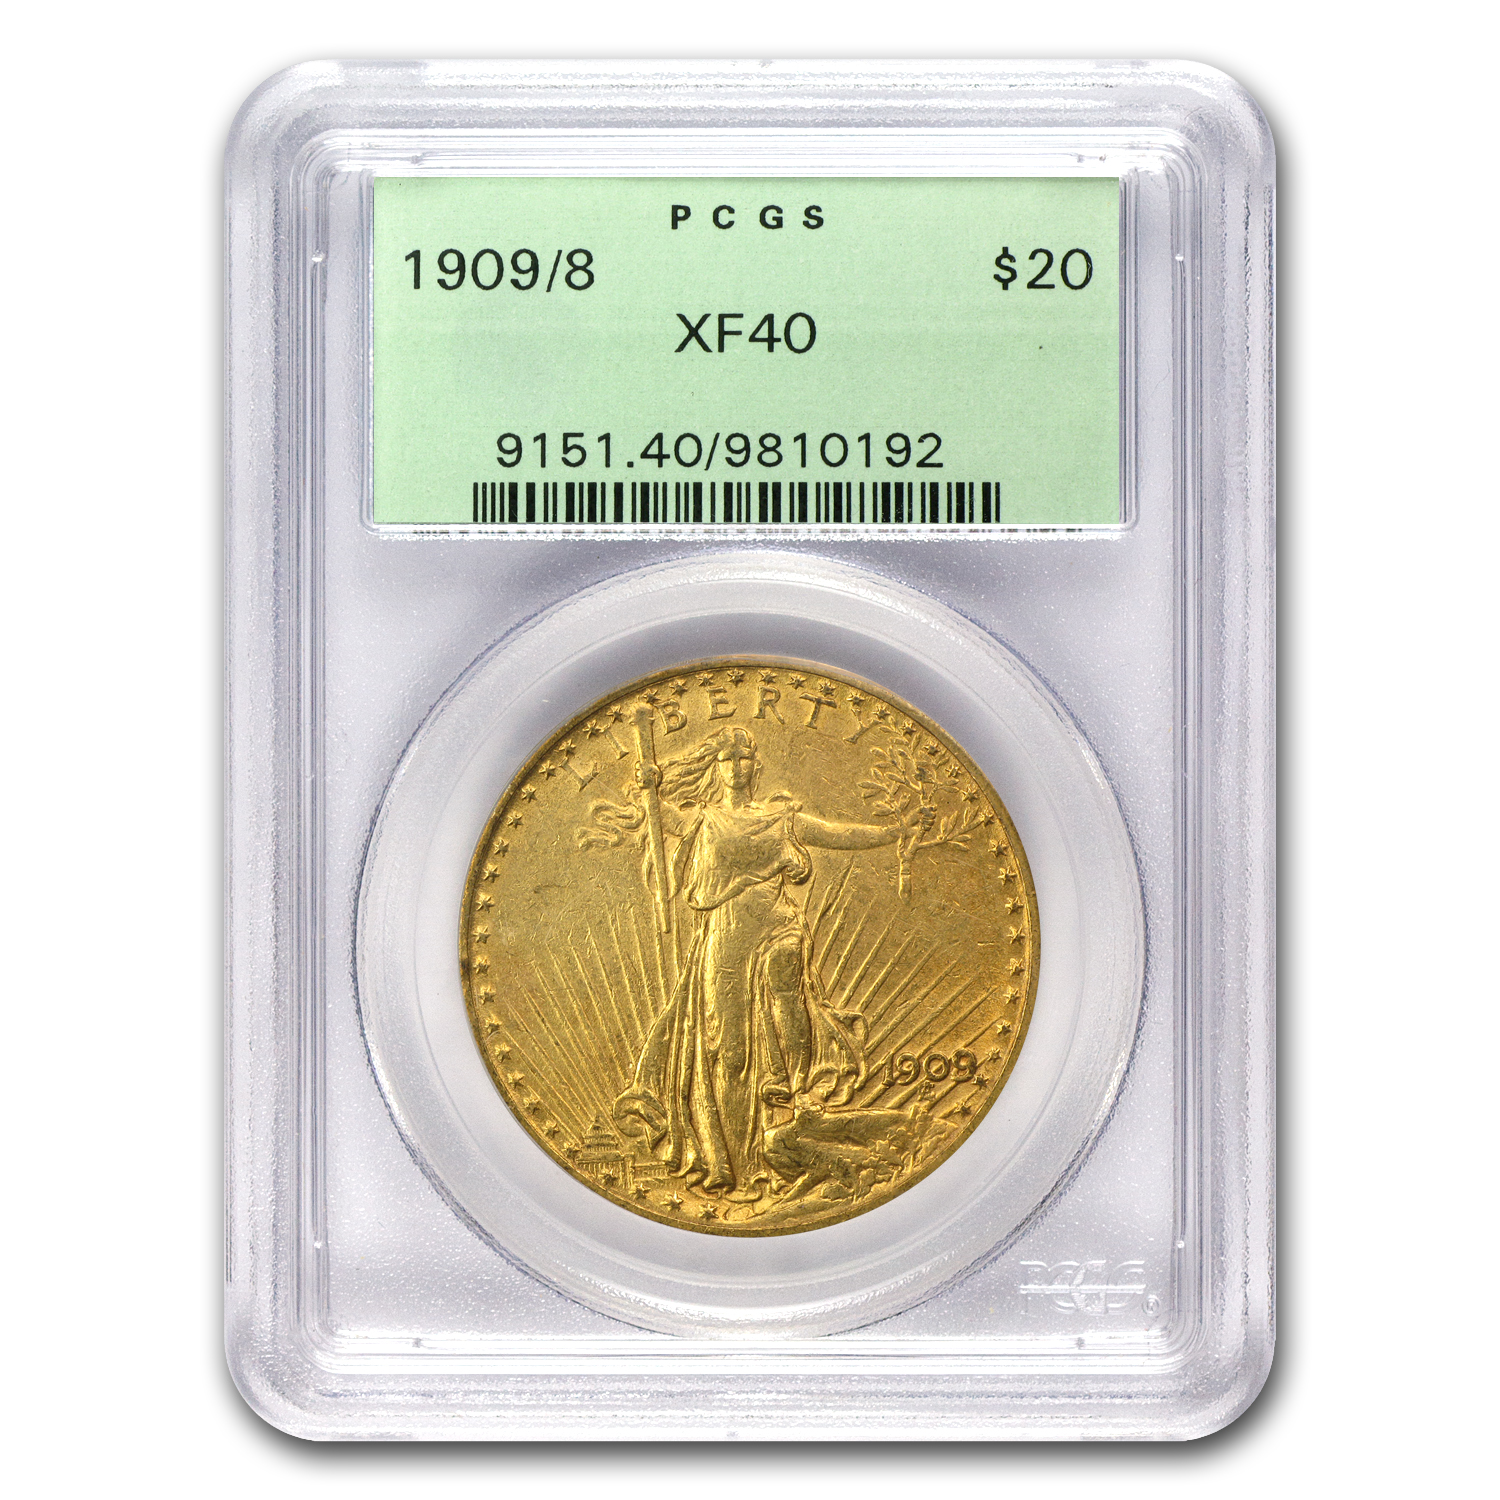 1909/8 $20 St. Gaudens Gold Double Eagle - Overdate - XF-40 PCGS